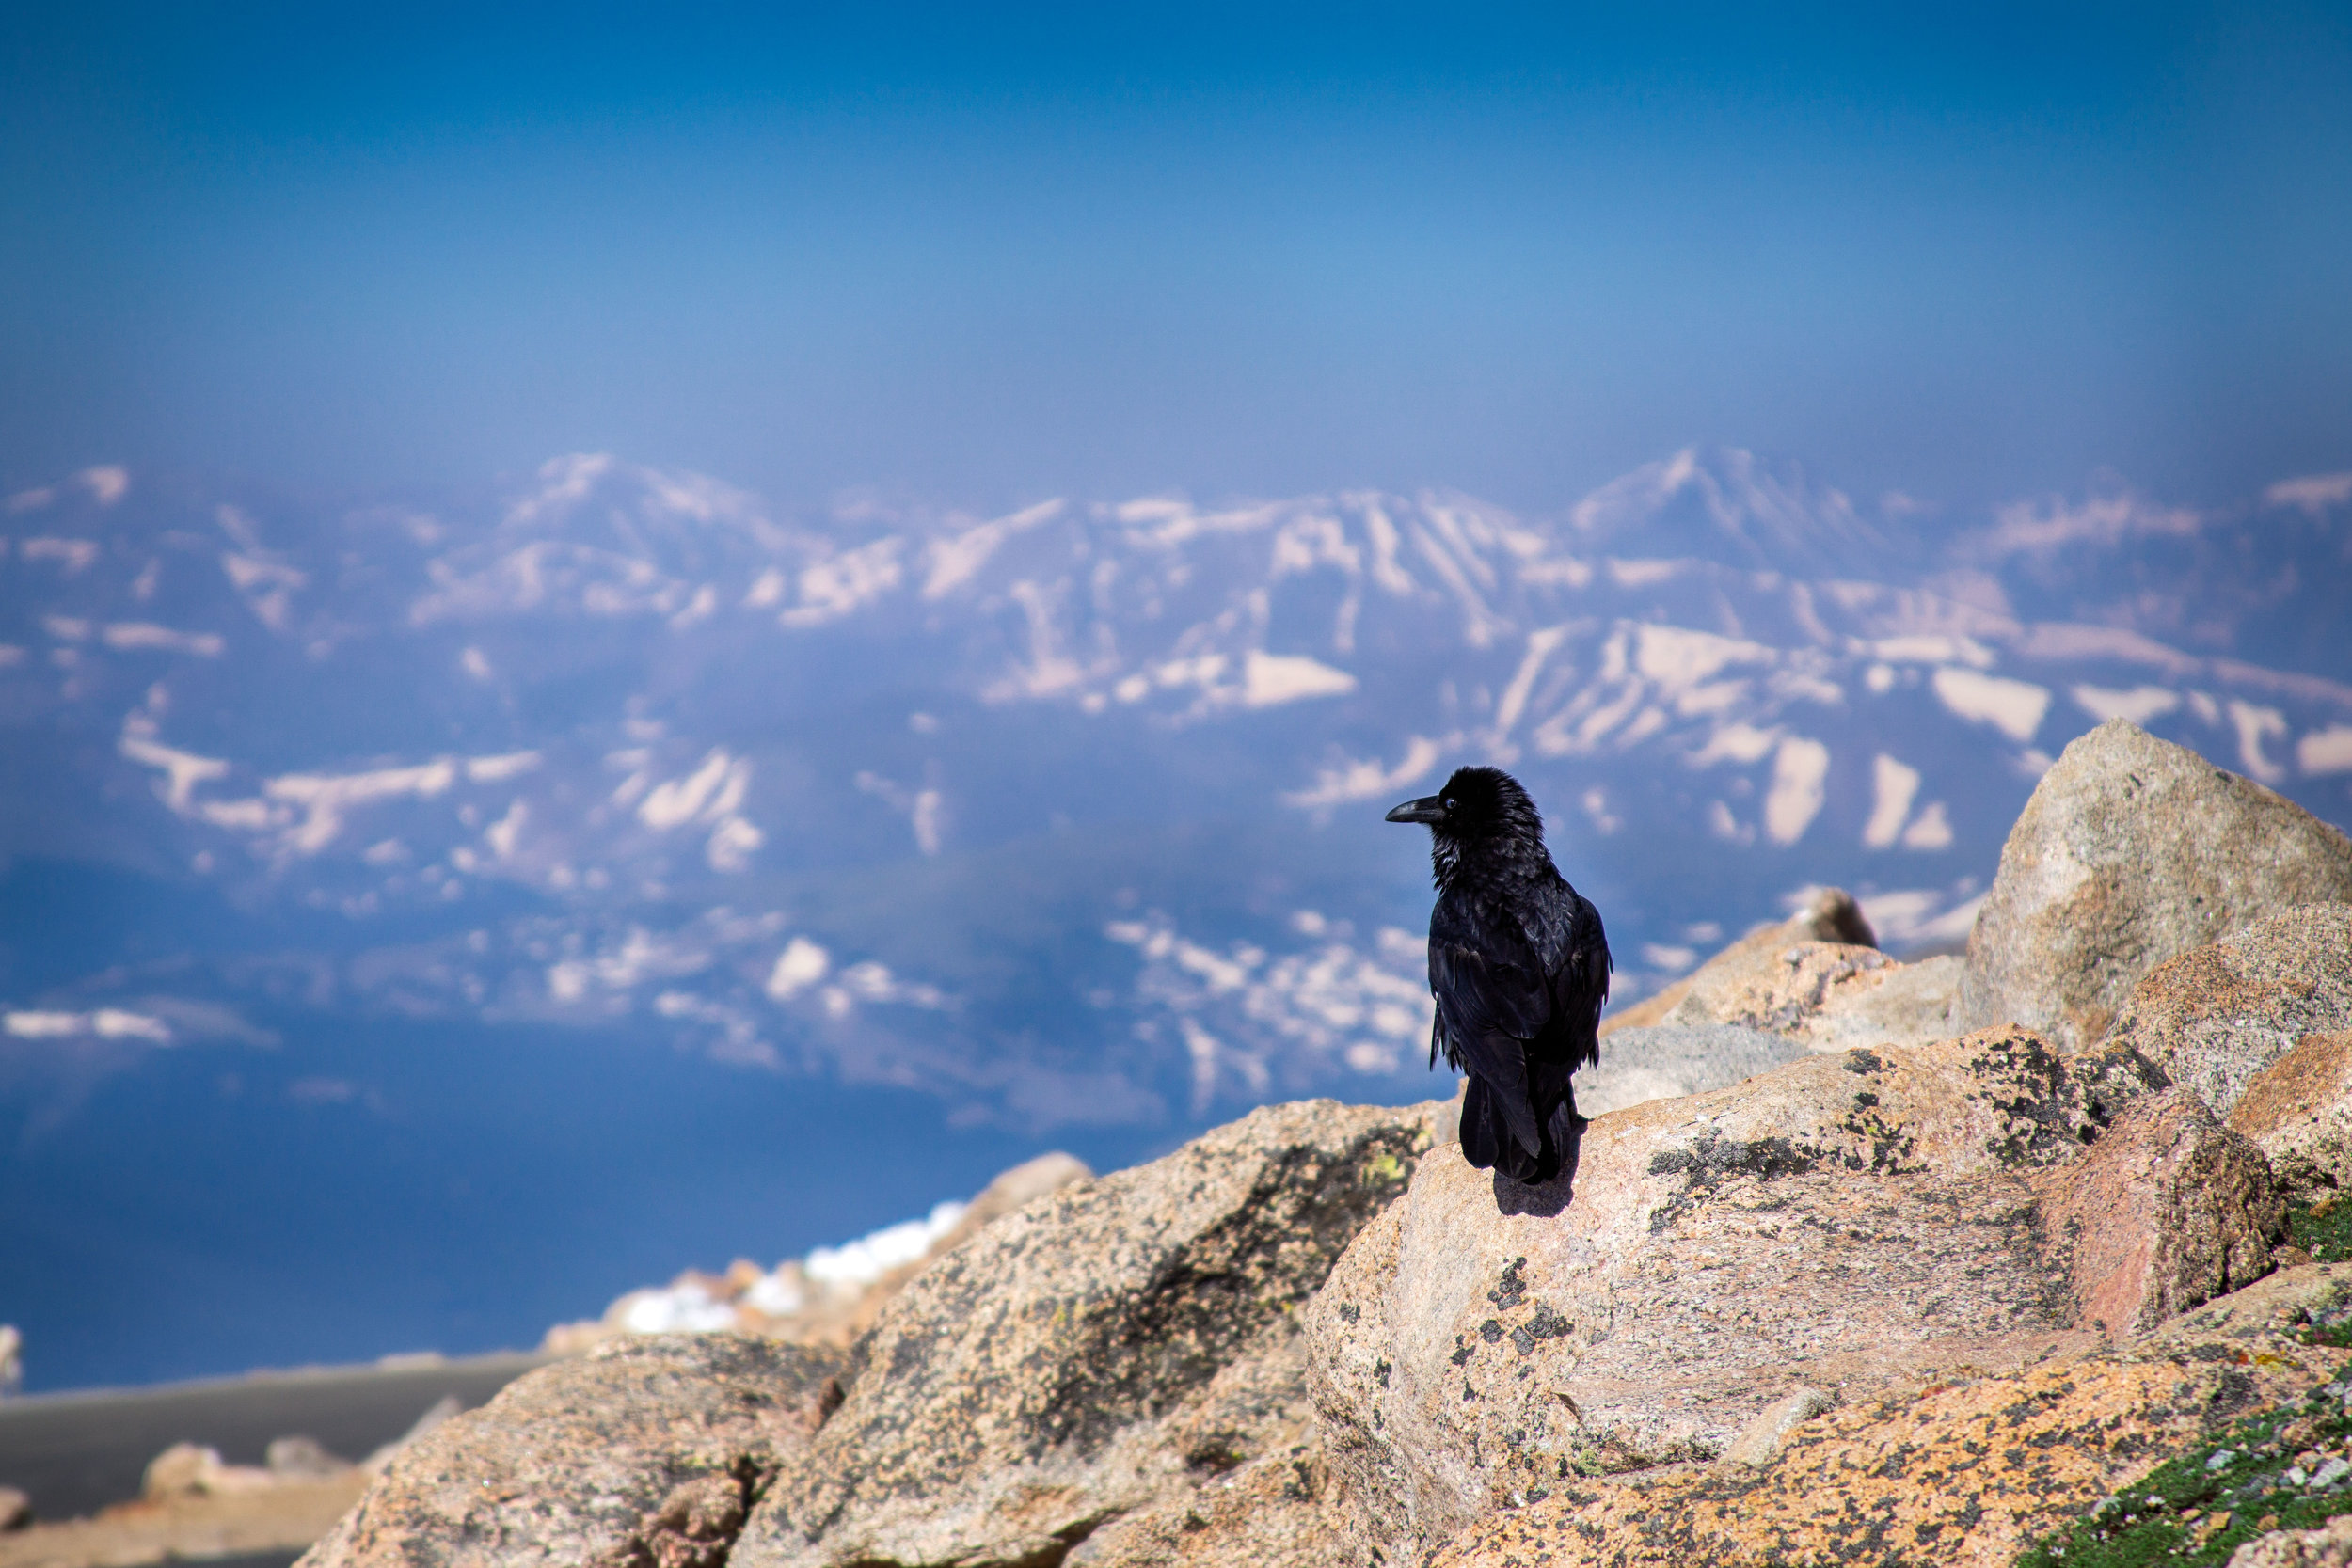 vickygood_travel_photography_colorado_mt.evans4.jpg